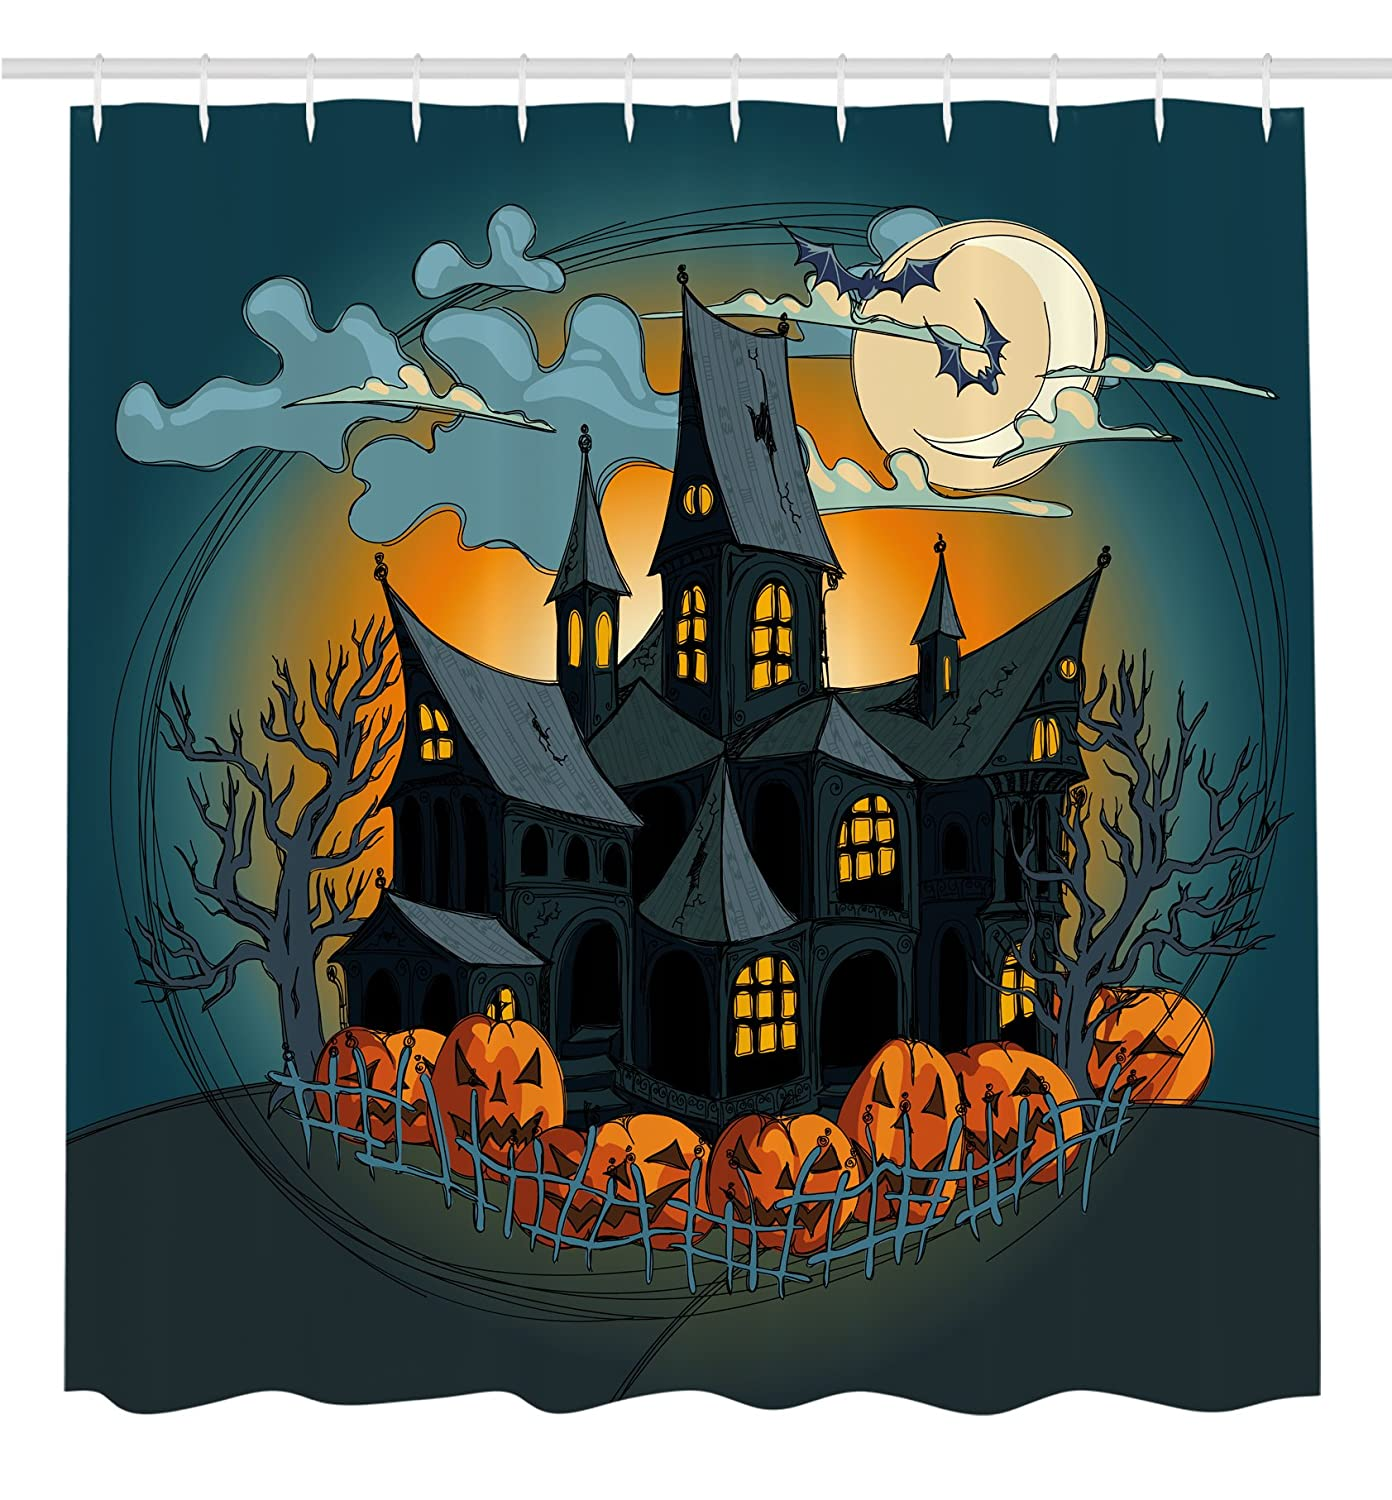 Halloween Decorations Shower Curtain by Ambesonne, Medieval Haunted House with Garden Full of Pumpkins and Dark Night, Fabric Bathroom Decor Set with Hooks, 70 Inches, Orange Teal